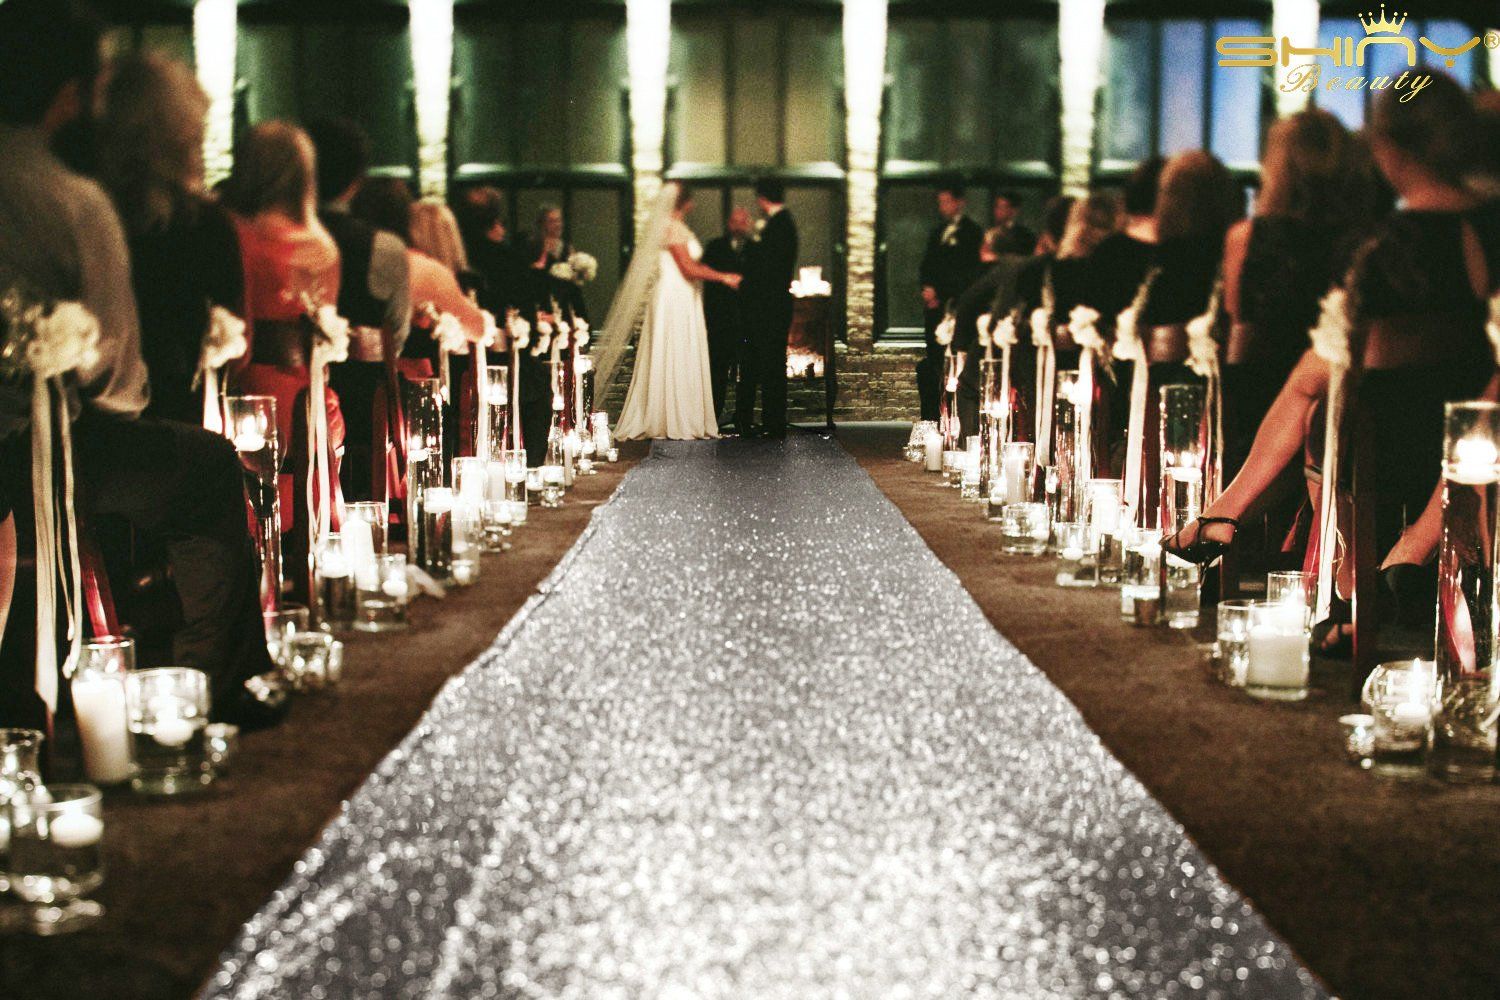 Silver Sequin Aisles Floor Runner-4FTX65FT Carpert Runner, Wedding Glitz Aisle Runner Personalized Welcomed by ShiDianYi